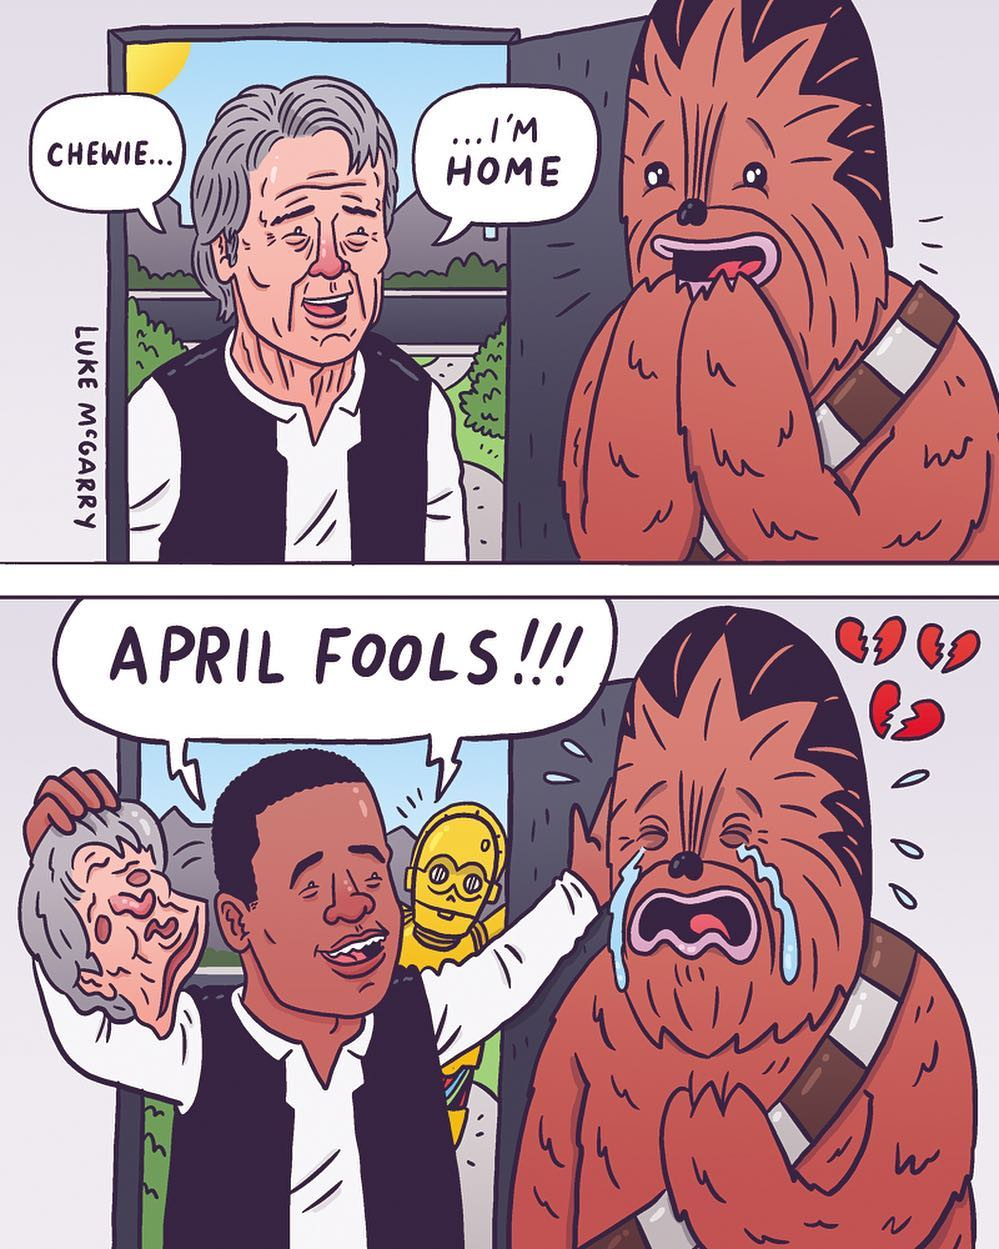 #sadchewie #aprilfools #chewbacca #hansolo #starwars #superdeluxe  #illustration #drawingaday